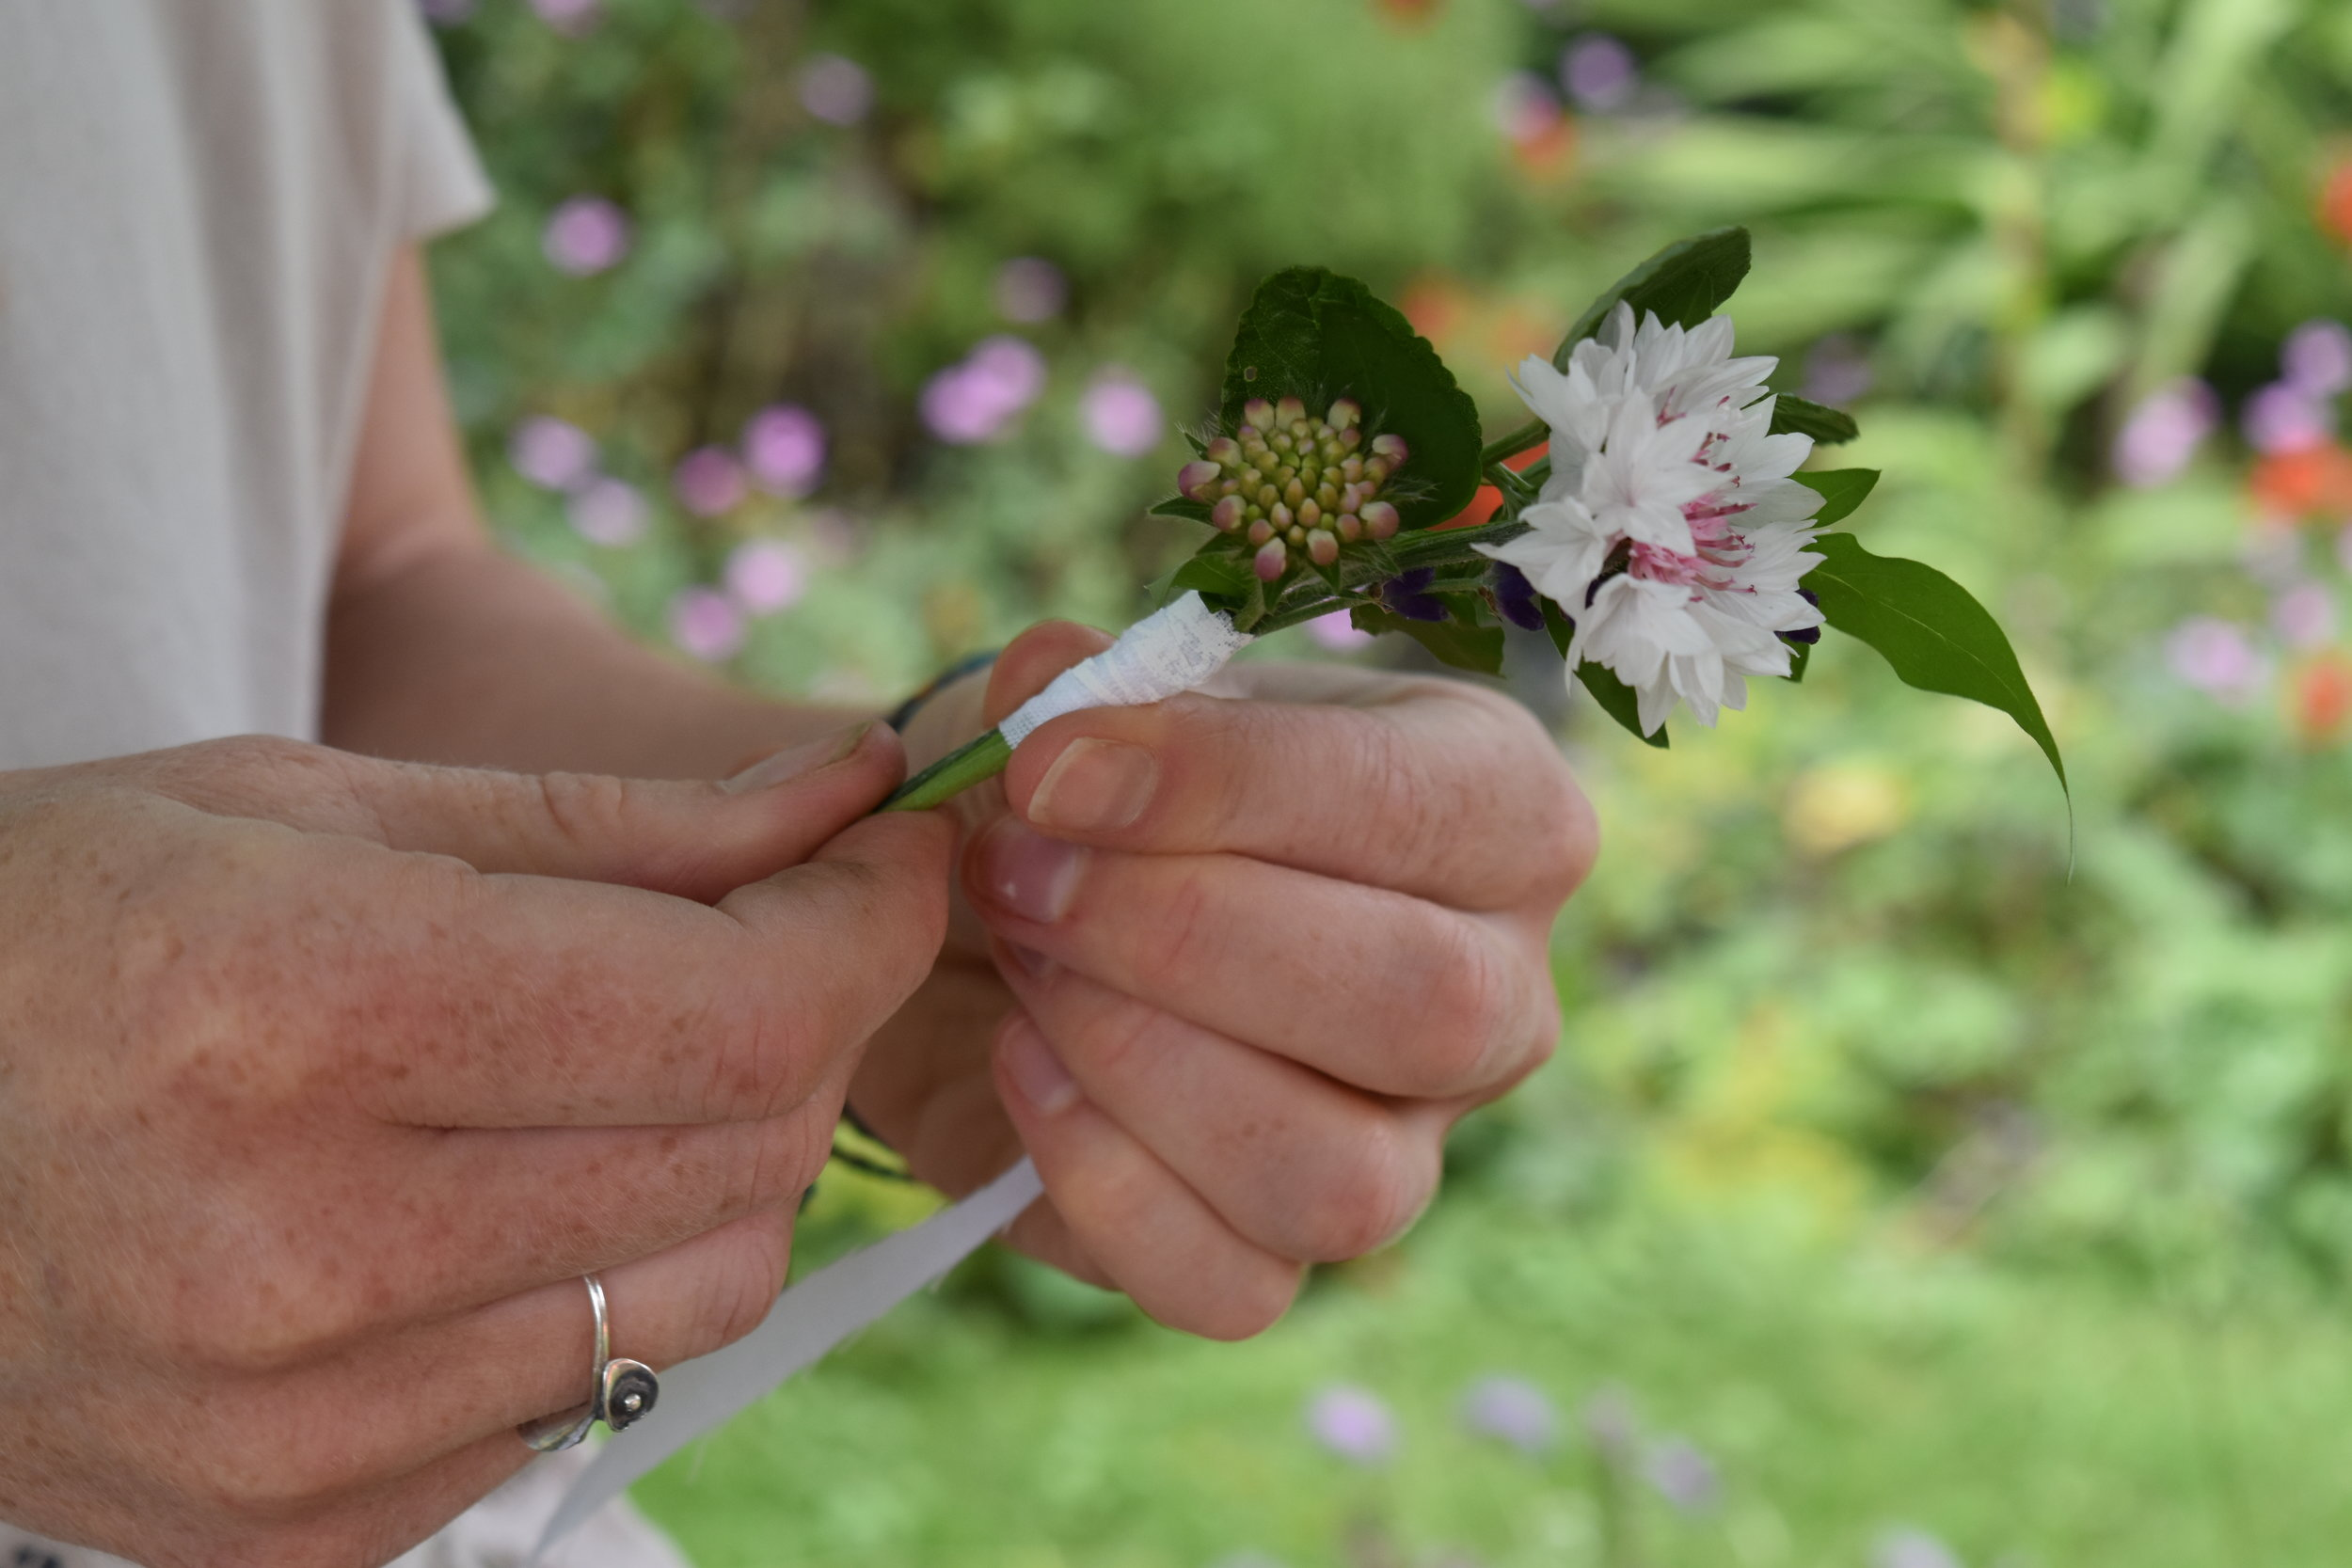 Button holes using pink corn flowers and wild scabious